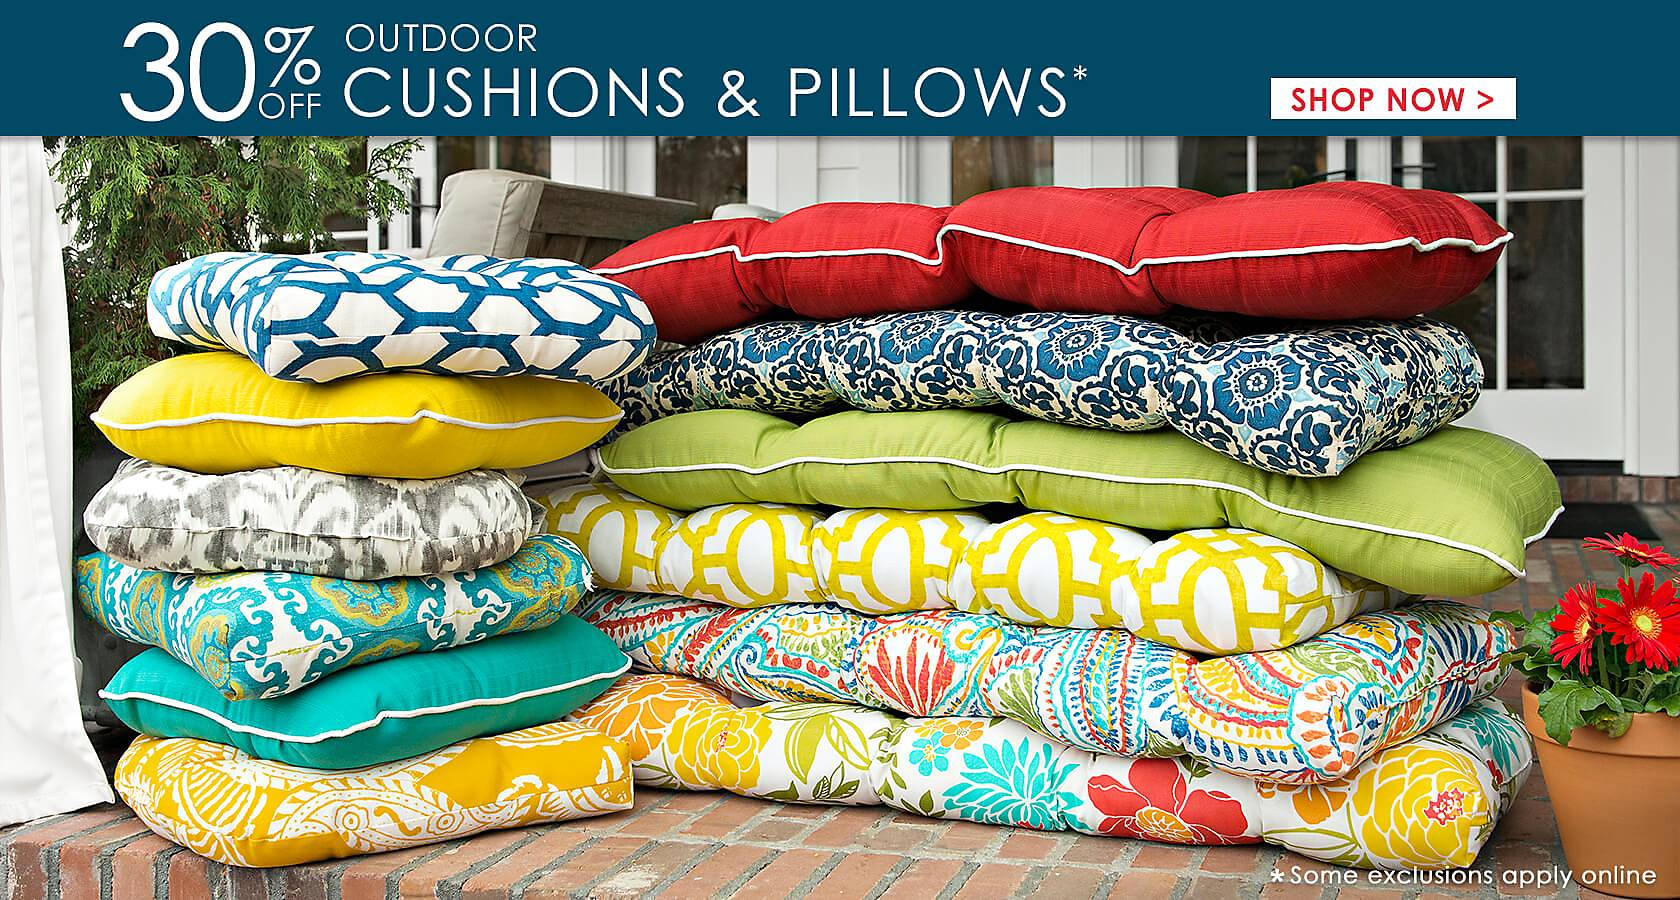 30% Off Outdoor Cushions & Pillows - Shop Now